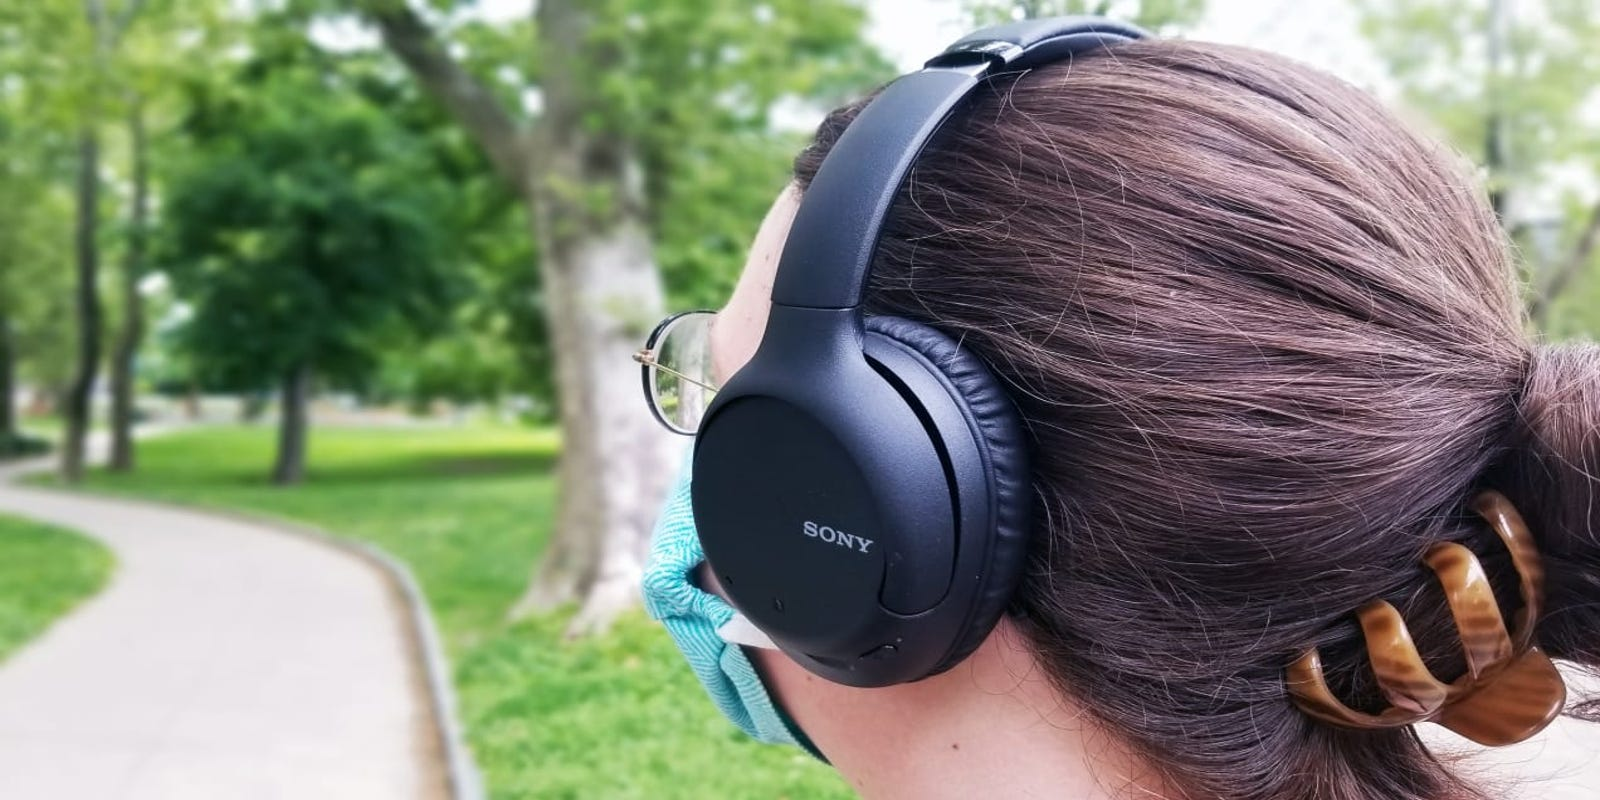 These noise-canceling Sony headphones are more than half off for Black Friday 2020